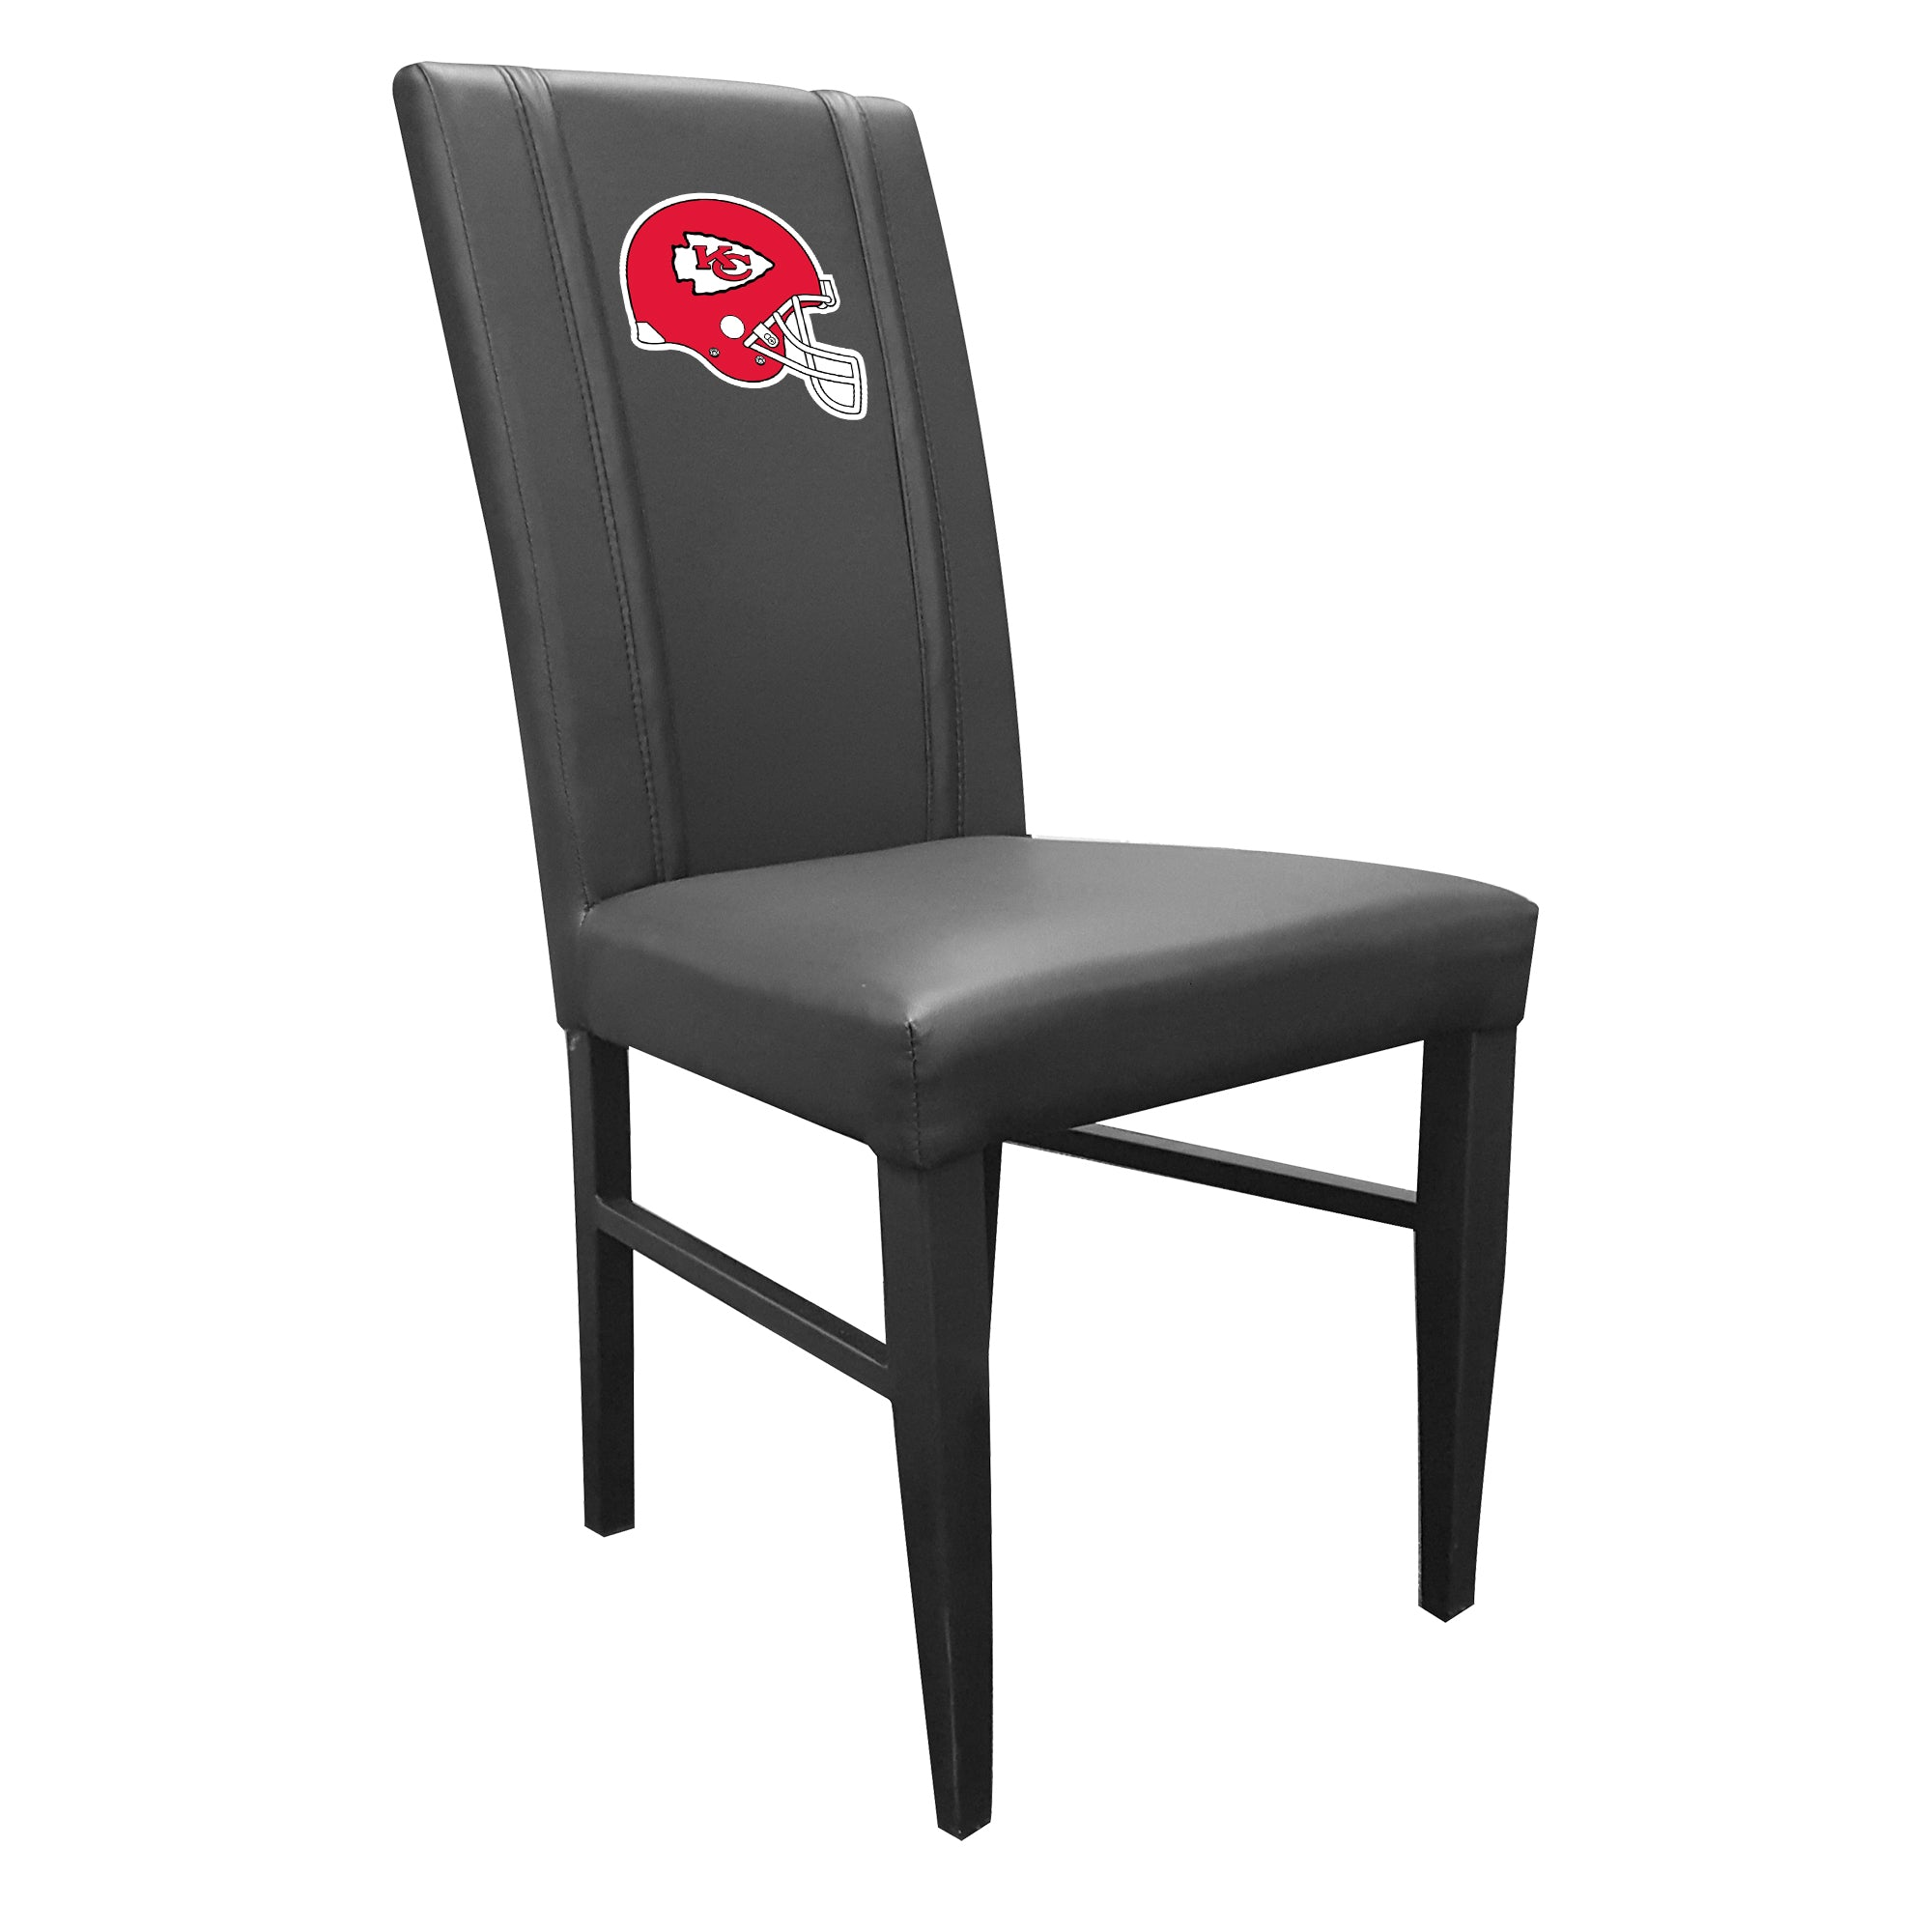 Side Chair 2000 with  Kansas City Chiefs Helmet Logo